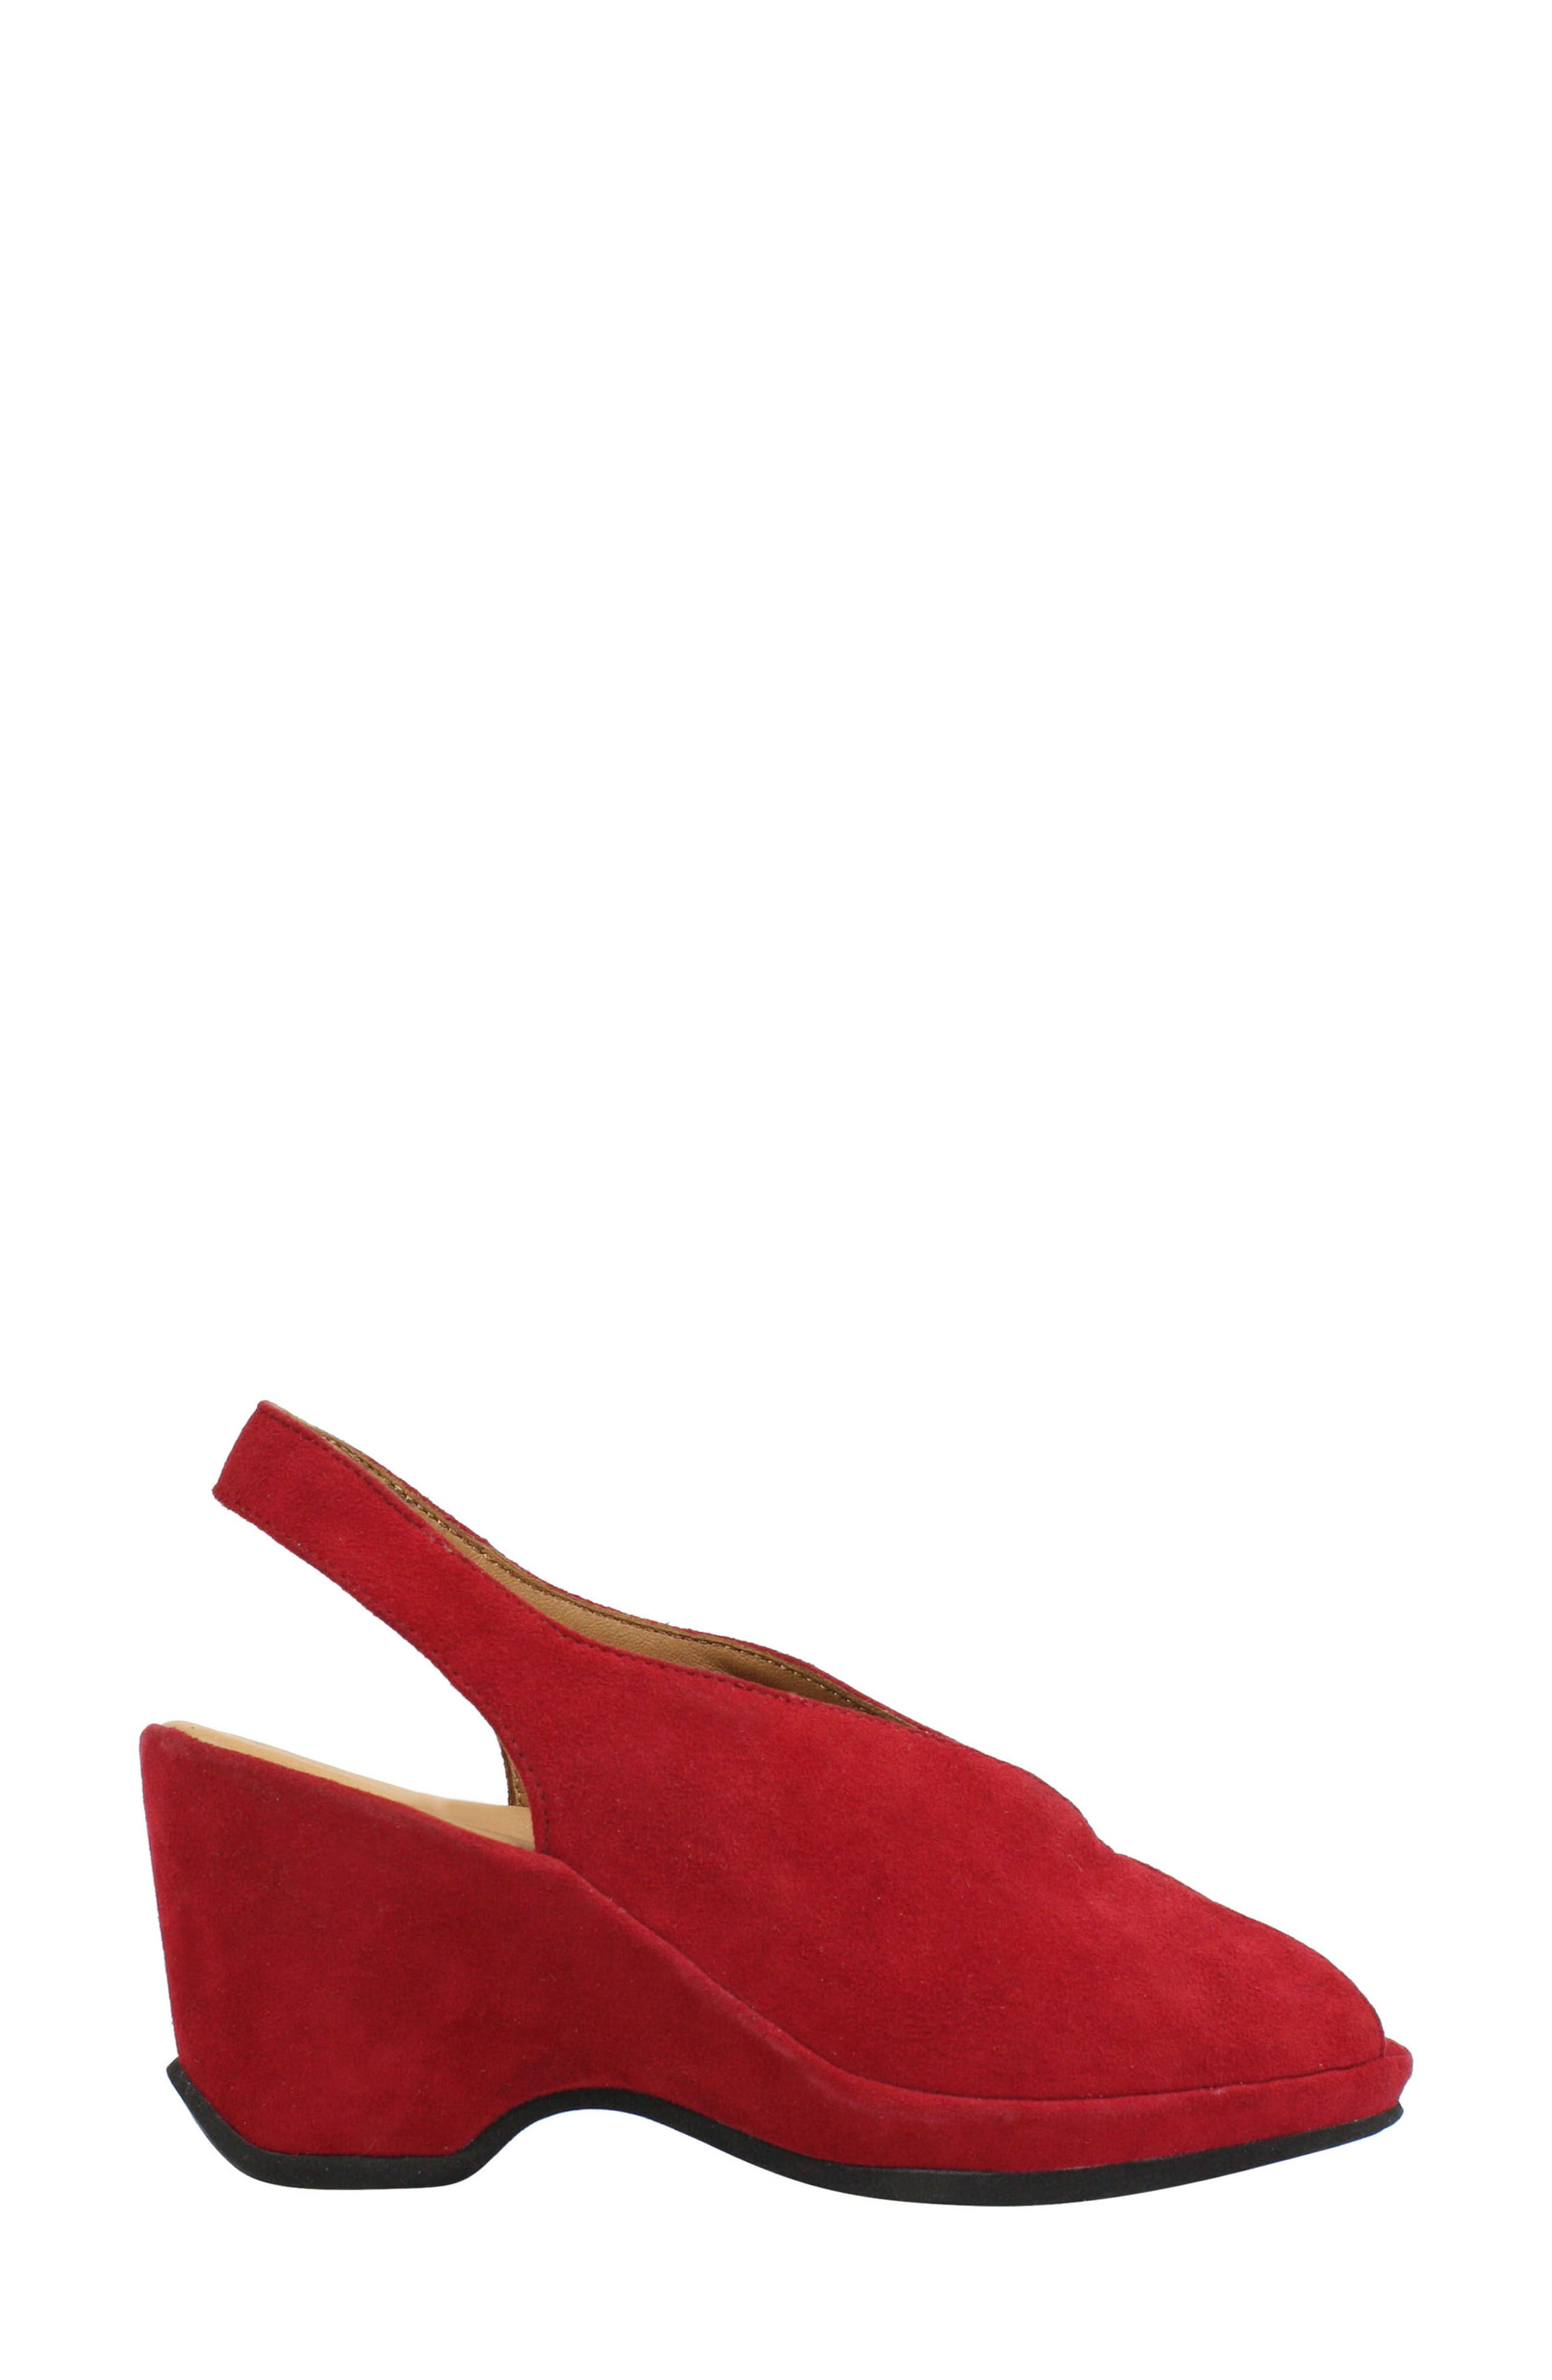 Odetta Slingback Wedge,                             Alternate thumbnail 3, color,                             Bright Red Suede